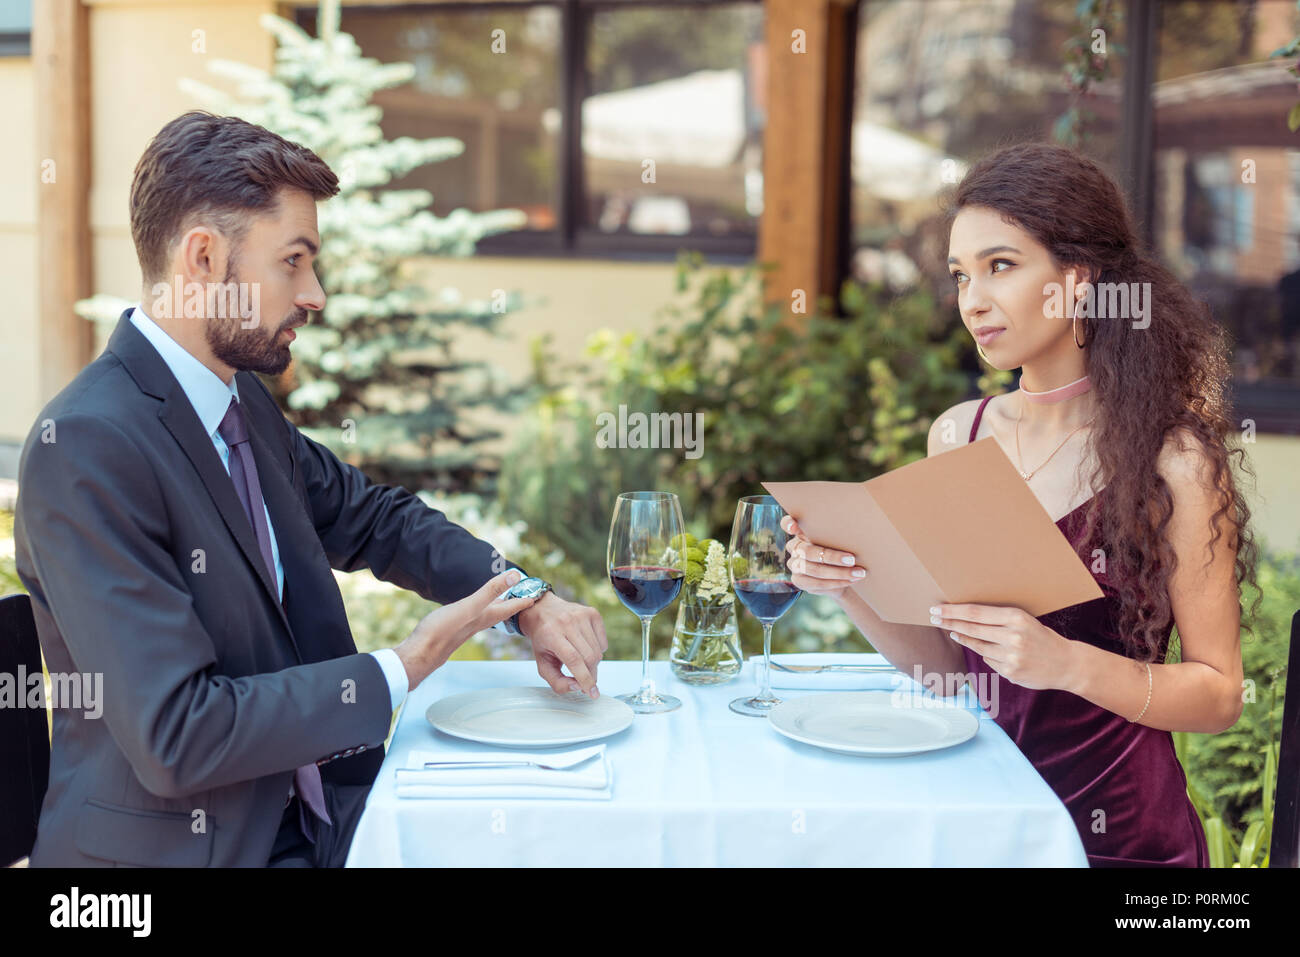 Couple having romantic date in restaurant, woman choosing meal in menu, man looking at watches Stock Photo